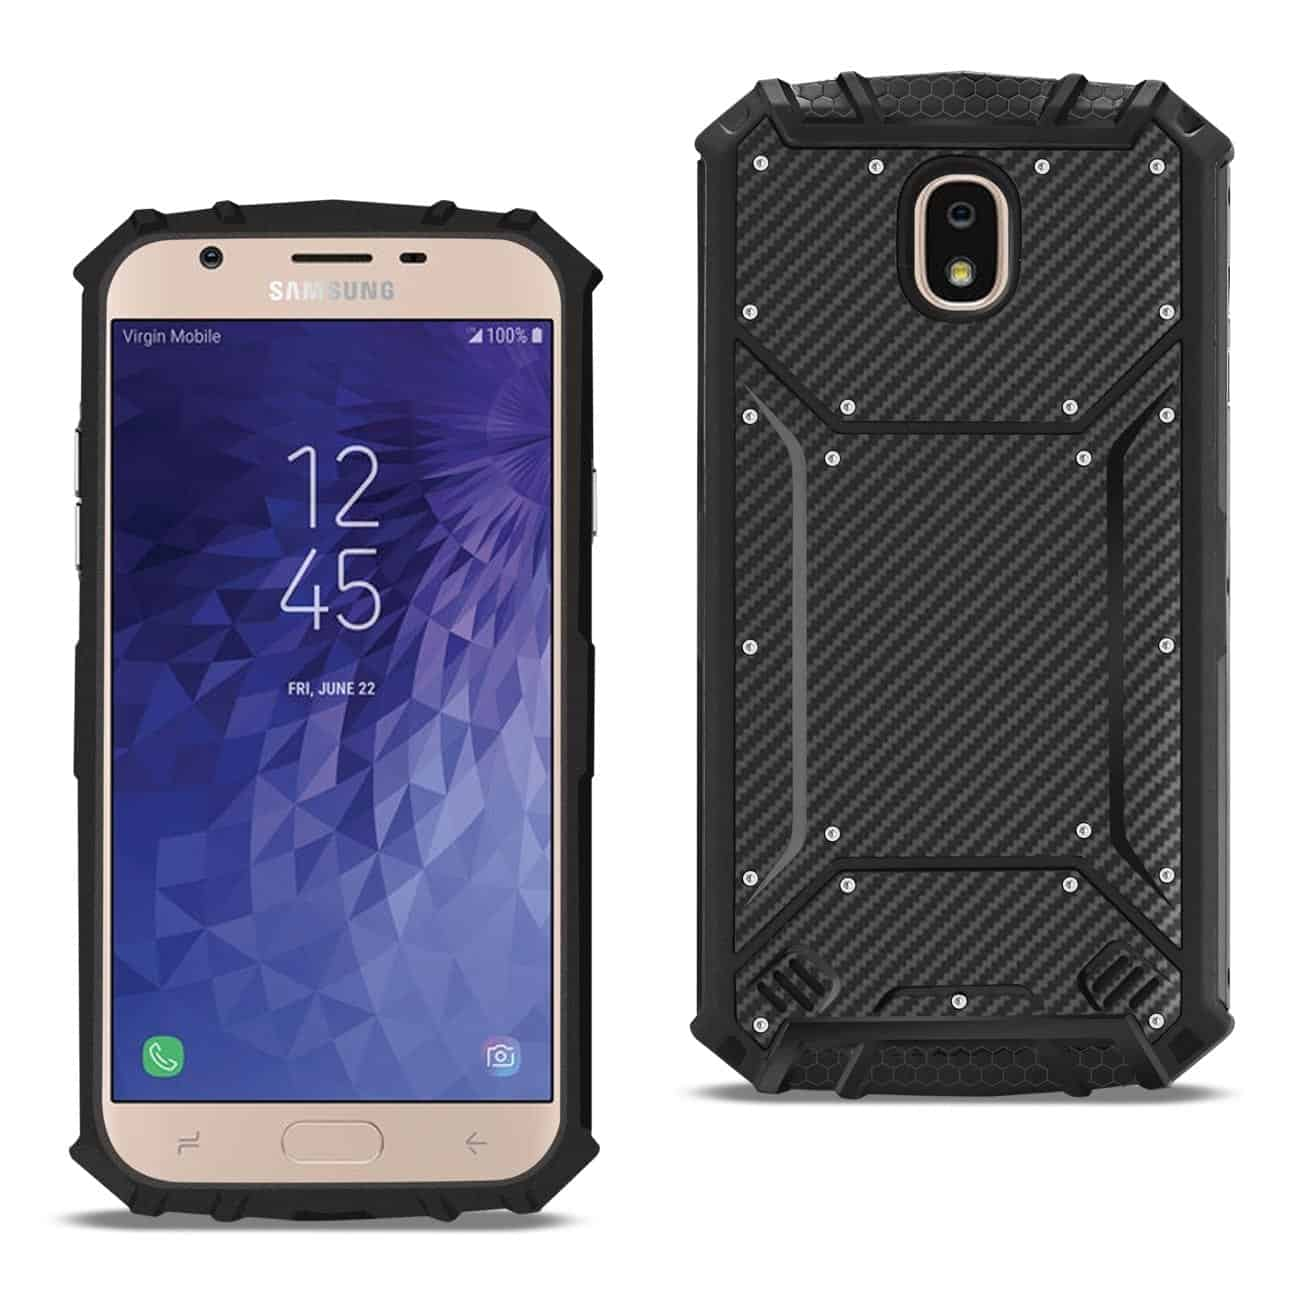 SAMSUNG GALAXY J7 (2018) Carbon Fiber Hard-shell Case In Black